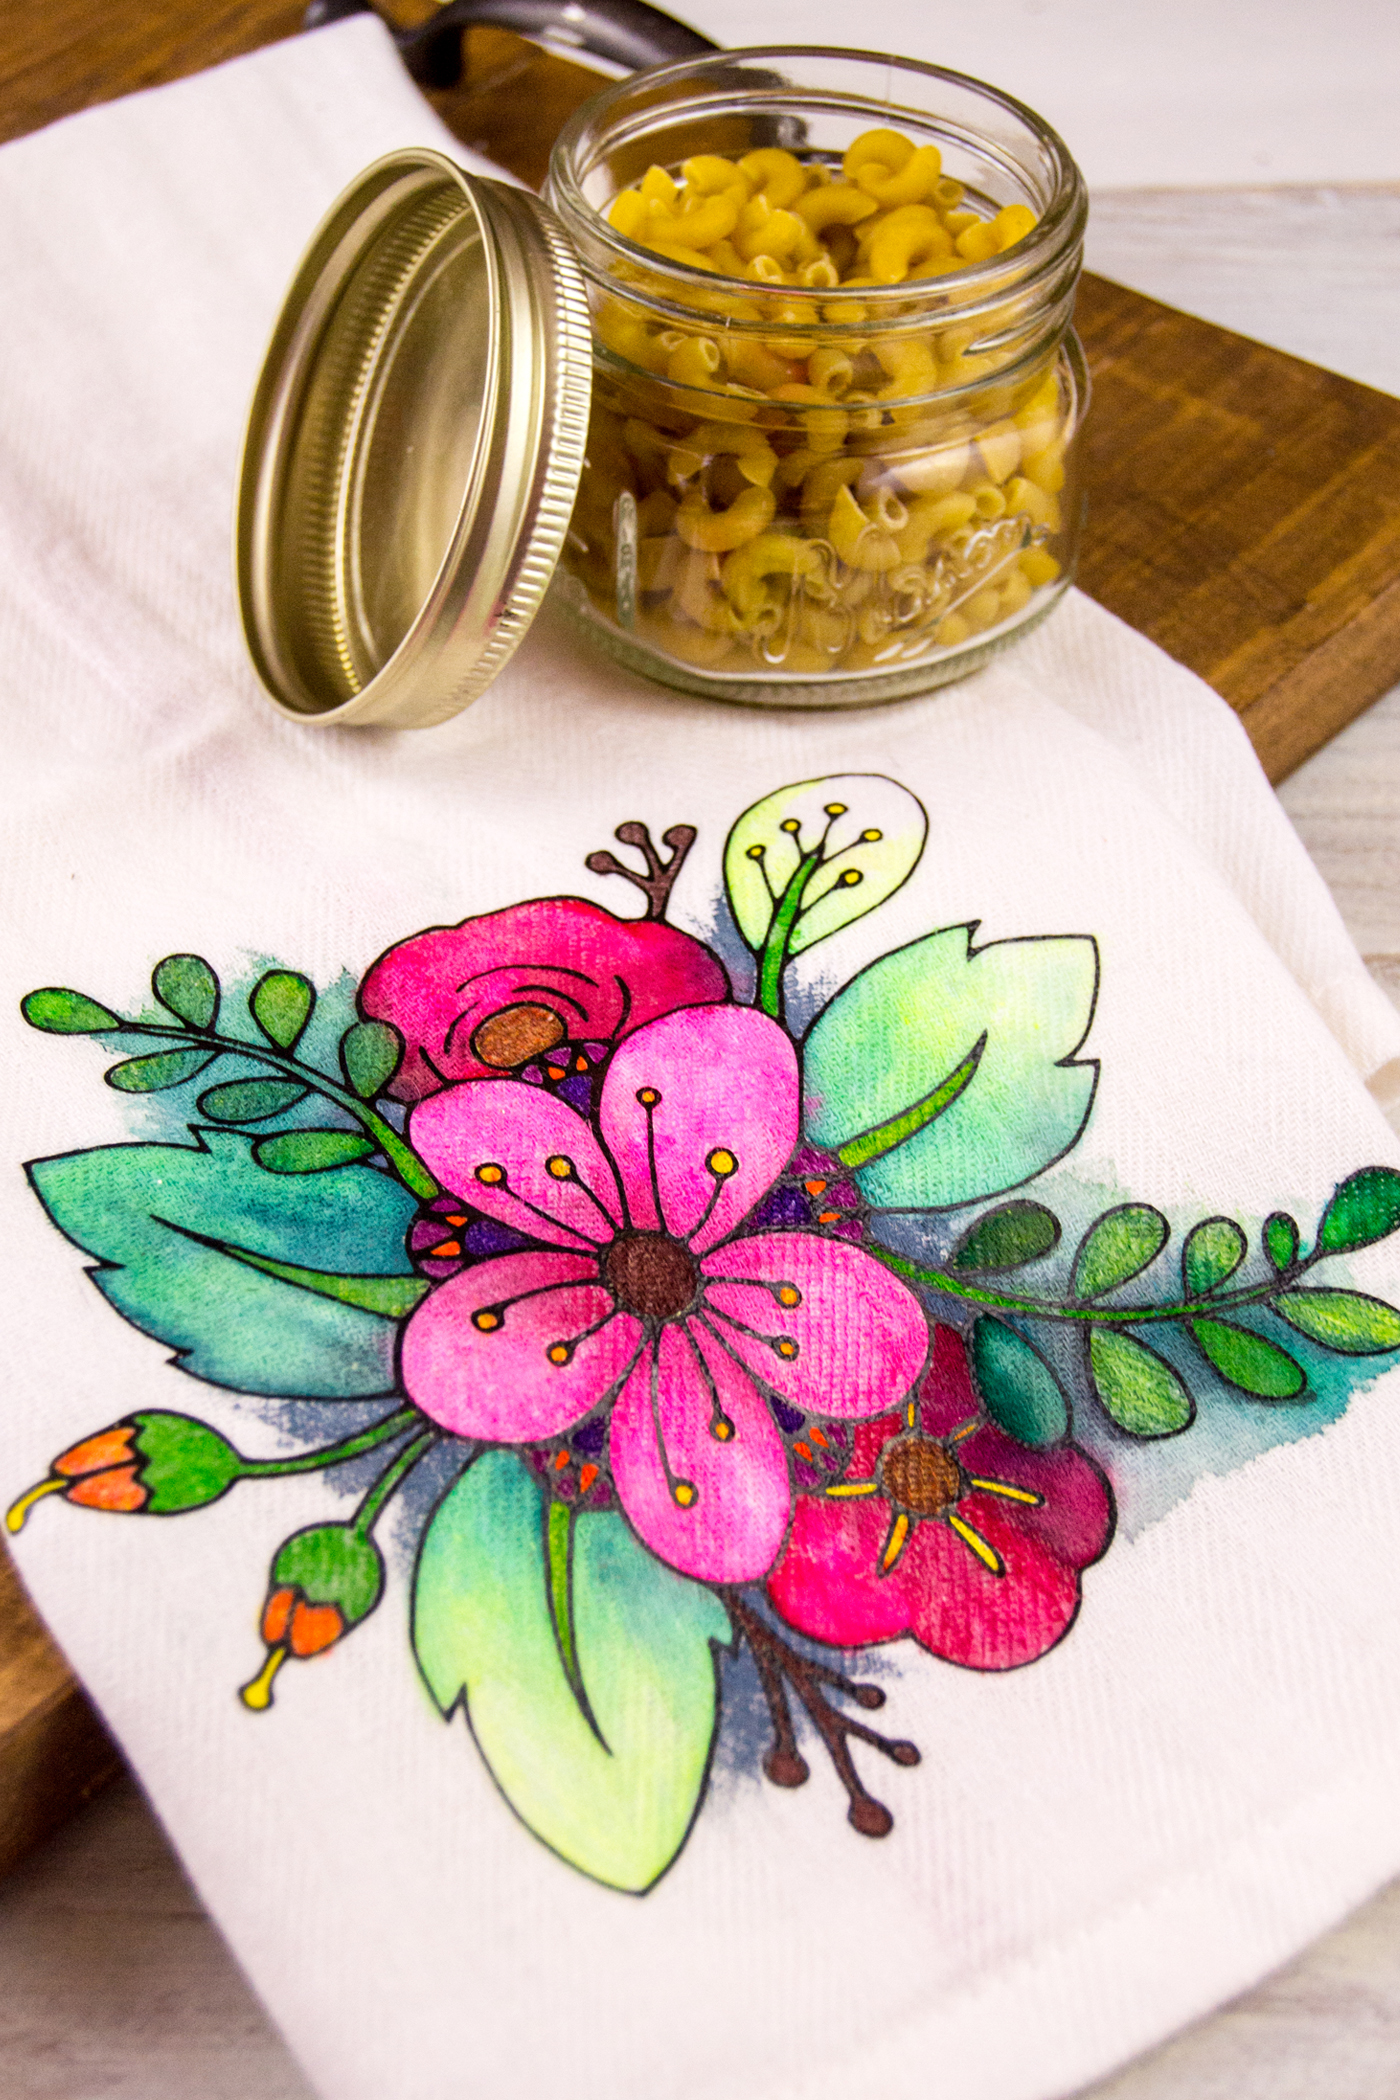 Adult coloring isn't just for the pages of a coloring book - use fabric markers on this DIY tea towel to make a unique gift personalized with color!